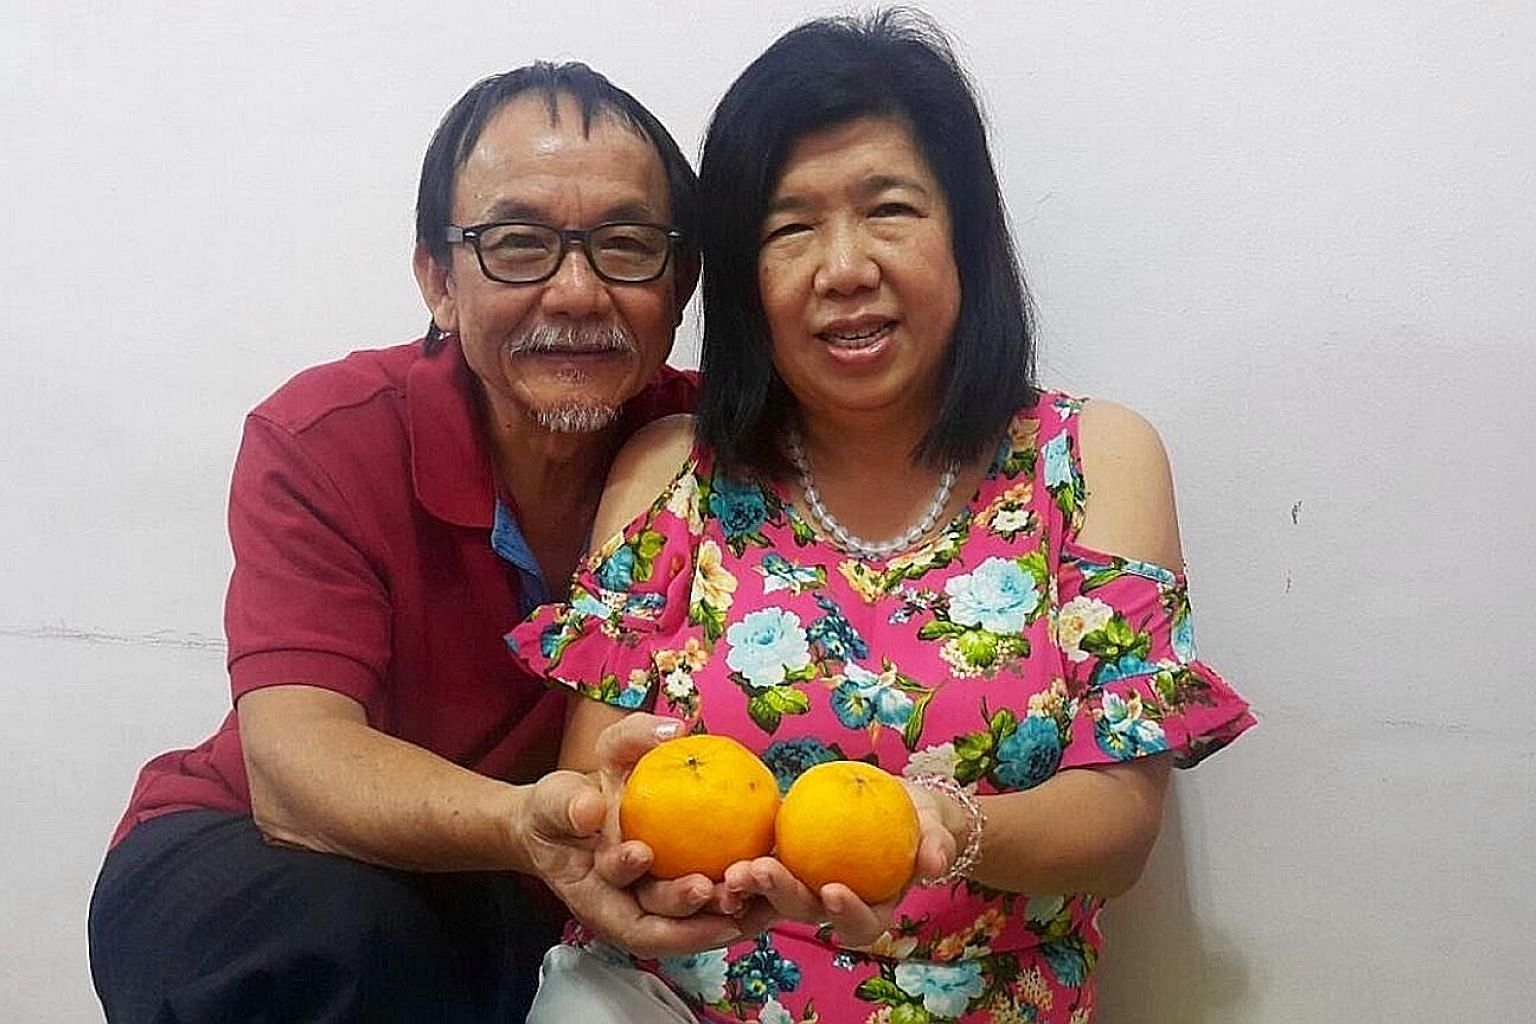 Ms Susanna Liew and her husband, pastor Raymond Koh, who was abducted by a group men on Feb 13, 2017. PHOTO: RAYMOND KOH'S FAMILY